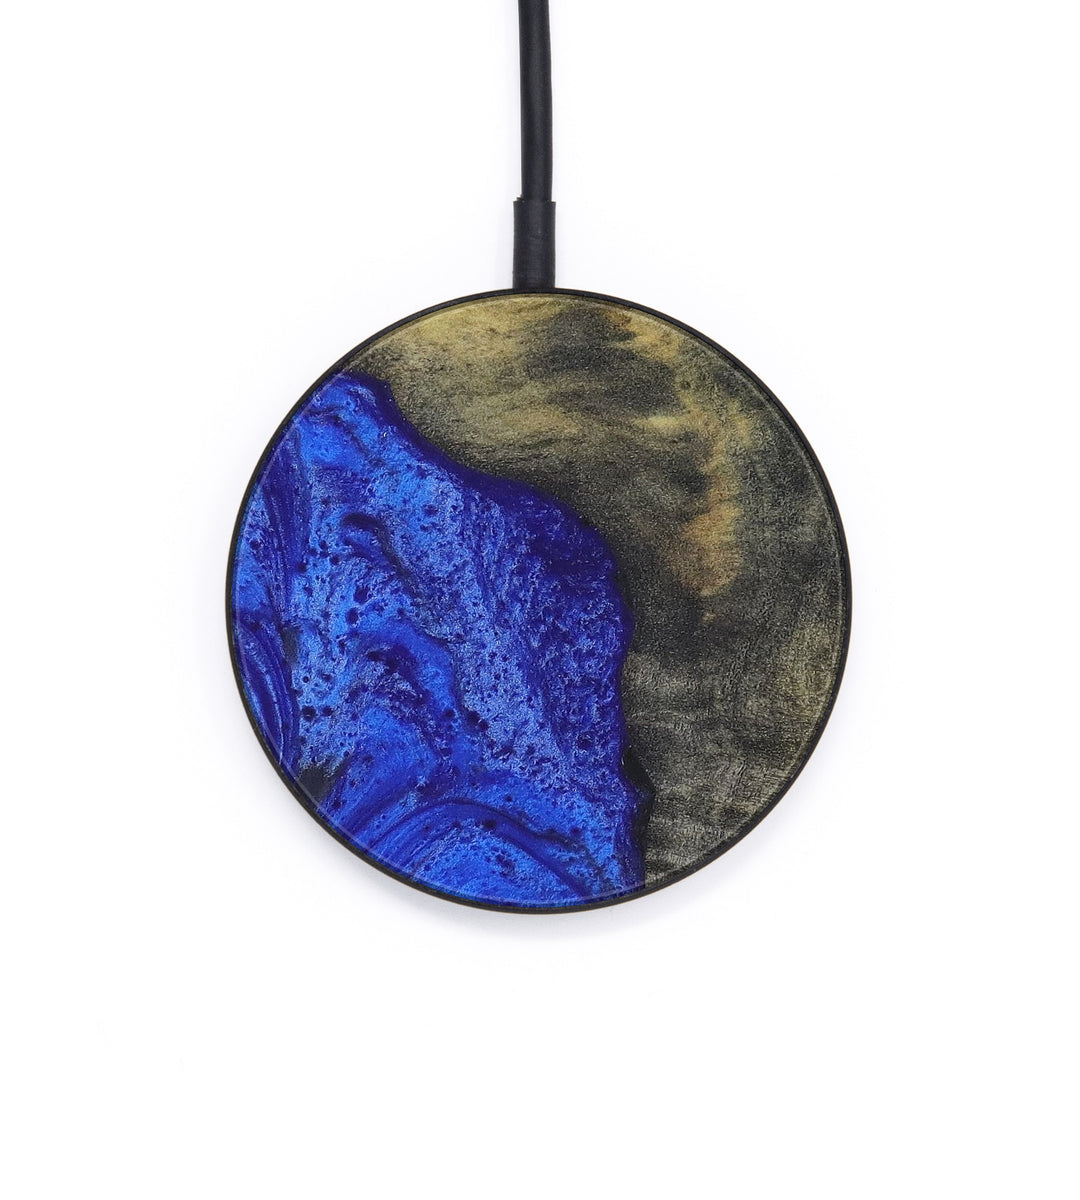 Circle Wood+Resin Wireless Charger - Marlena (Dark Blue, 405997)